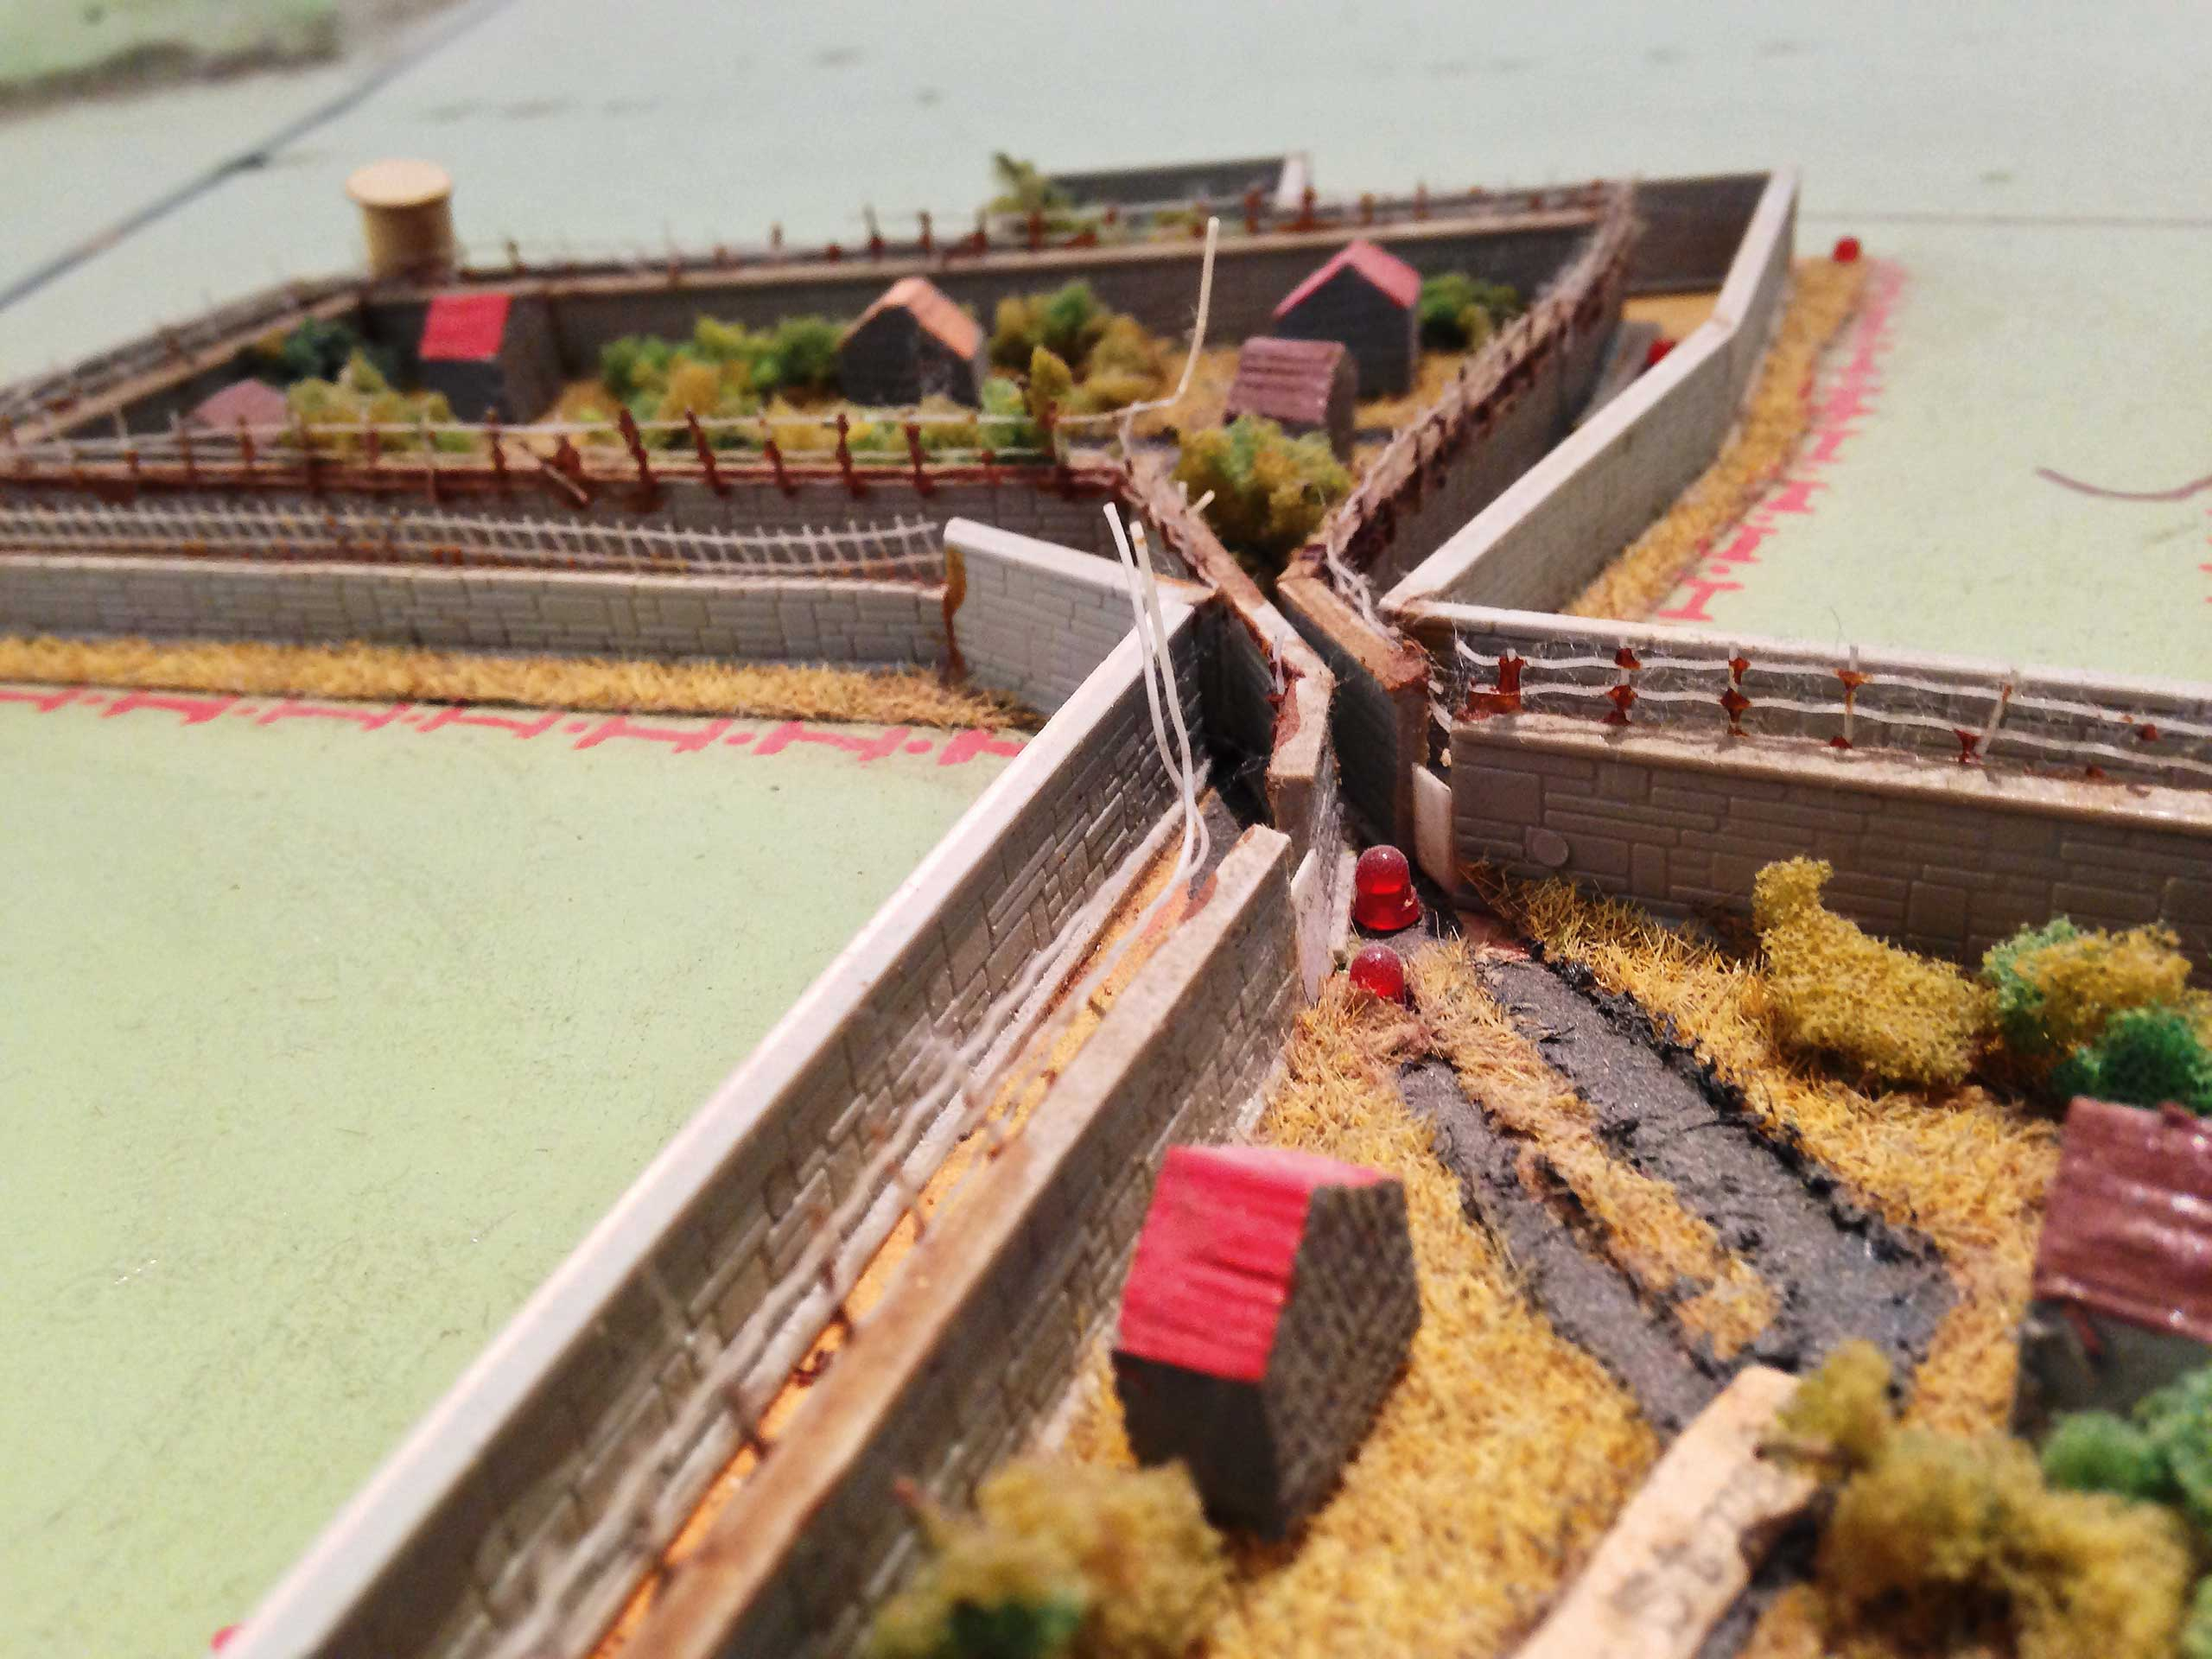 Part of a model of the border installations at Potsdam, including the electric signal fence. This model was made by Franz Pateley, the border commander for the Klein-Glienicke section in border regiment. He kept the model in his garage for twenty years, and it was first shown to the public in 2011.